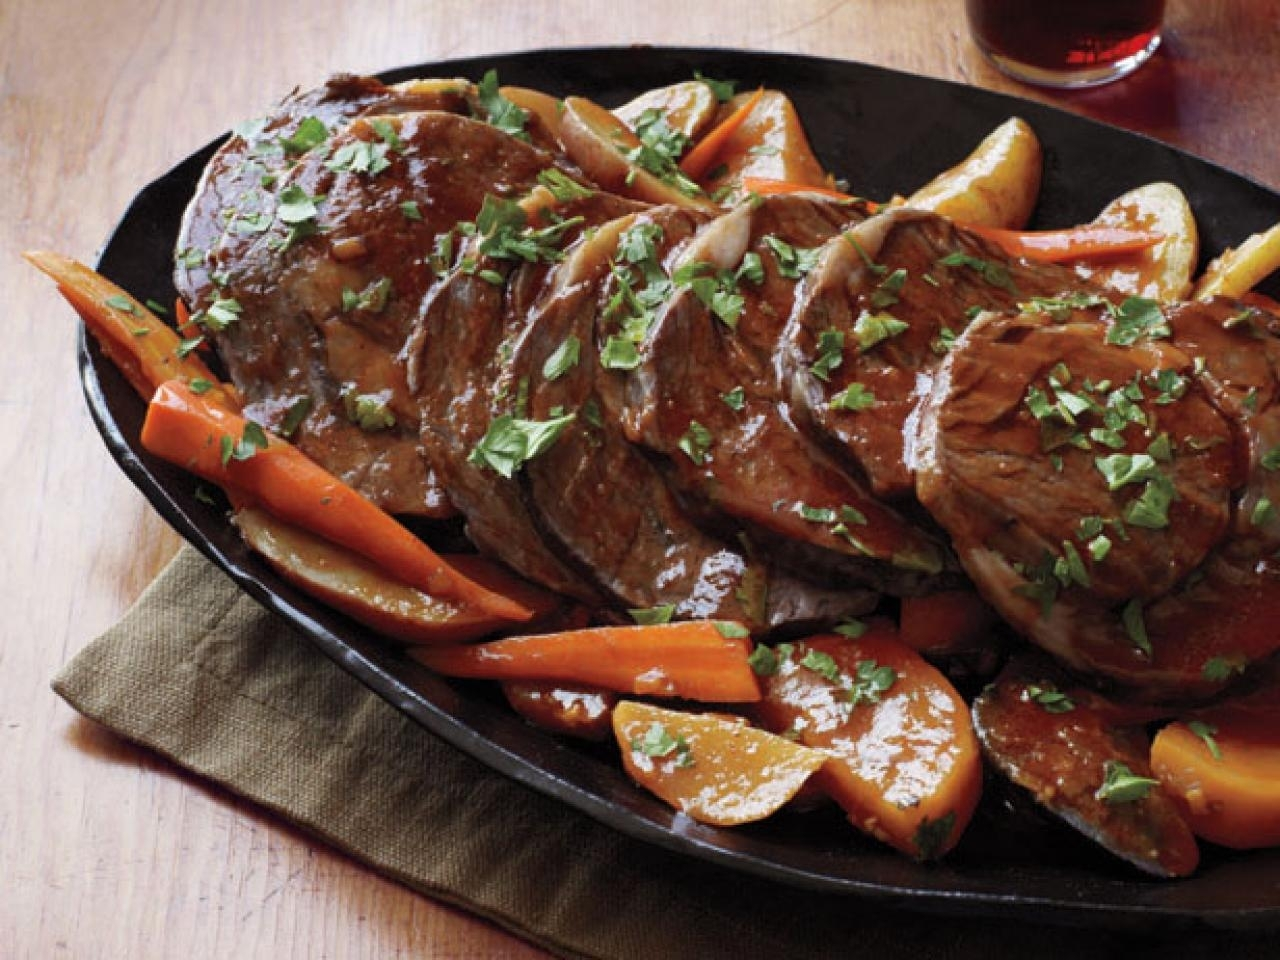 best 5 new year's eve recipes   fn dish - behind-the-scenes, food